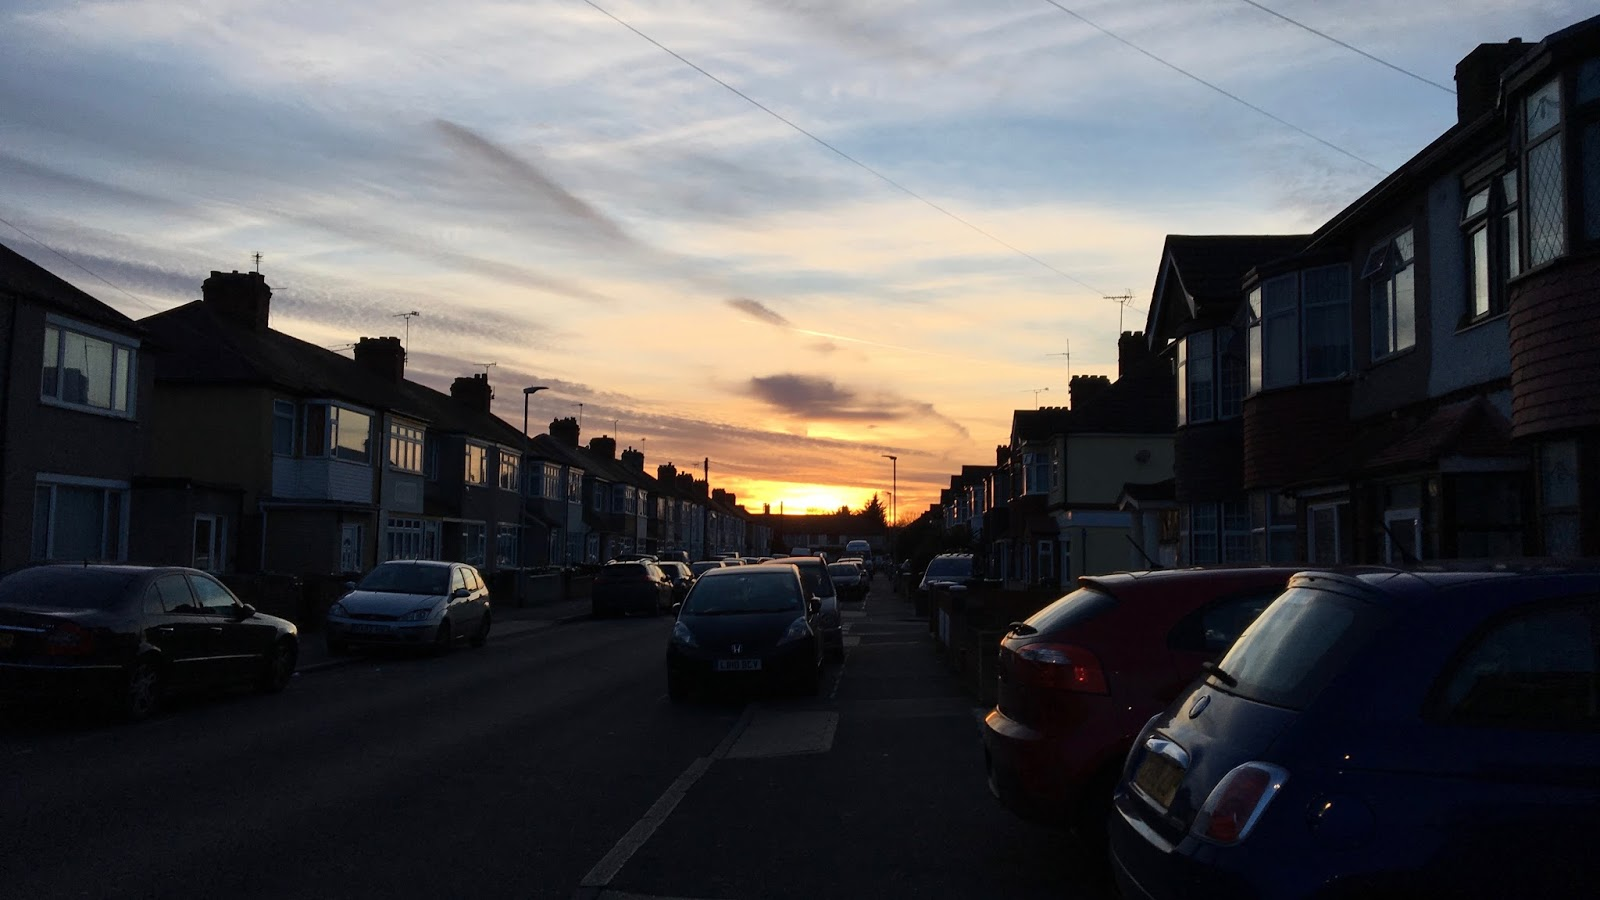 How To Find Positivity In 2017 Sunset In East London